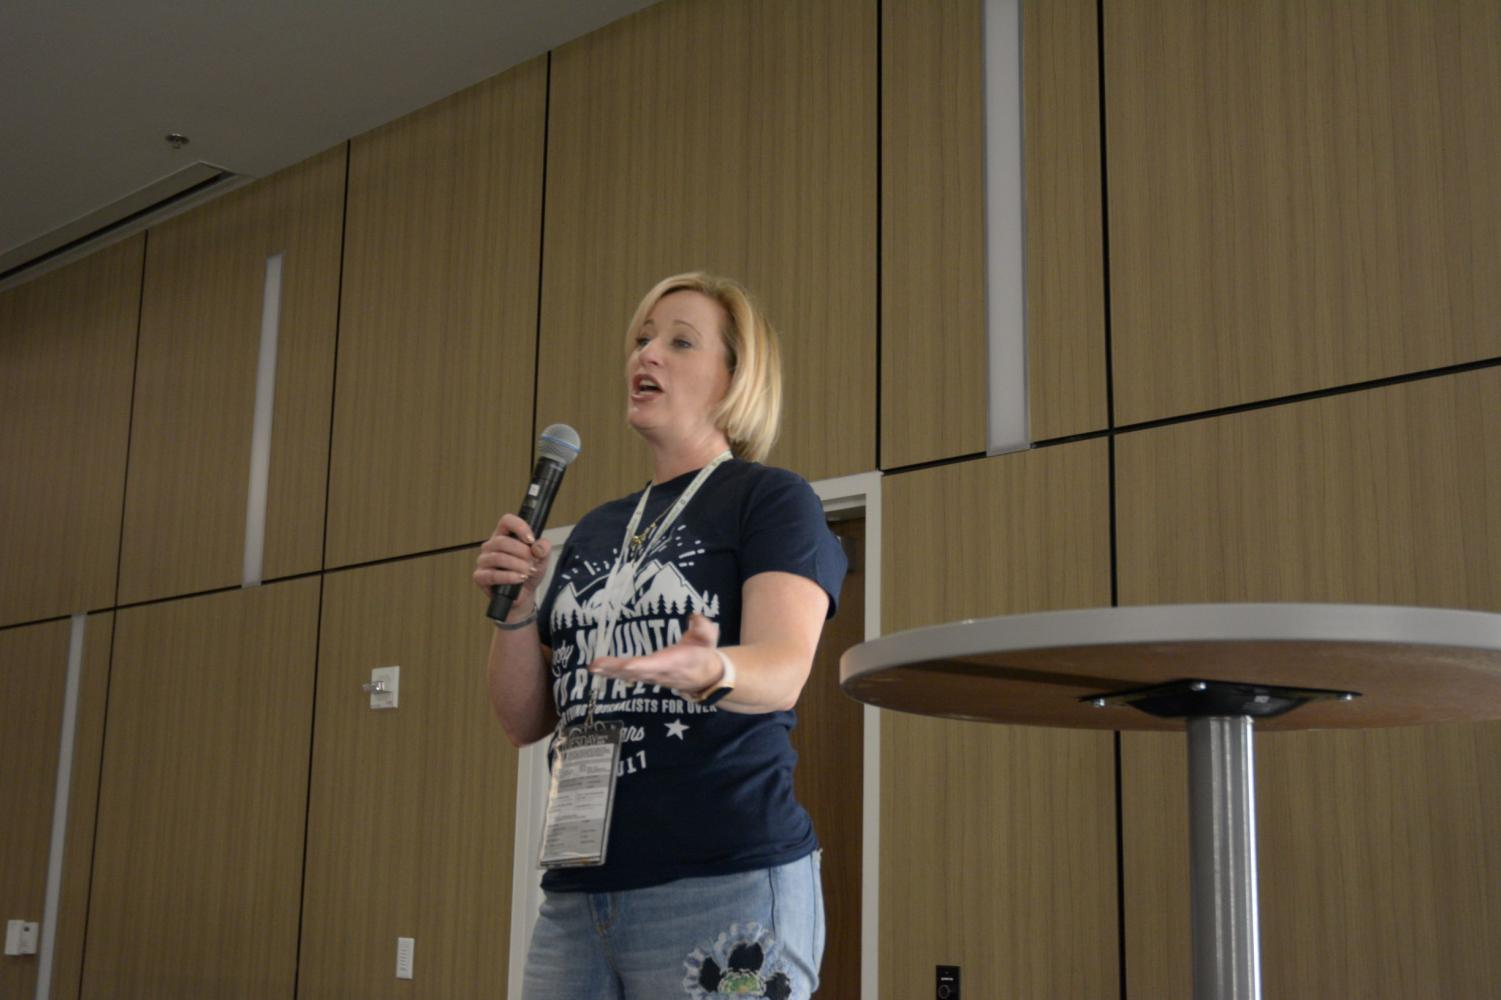 Nicole Arduini, director at the Rocky Mountain Camp, delivers a speech at a Key Note presentation.